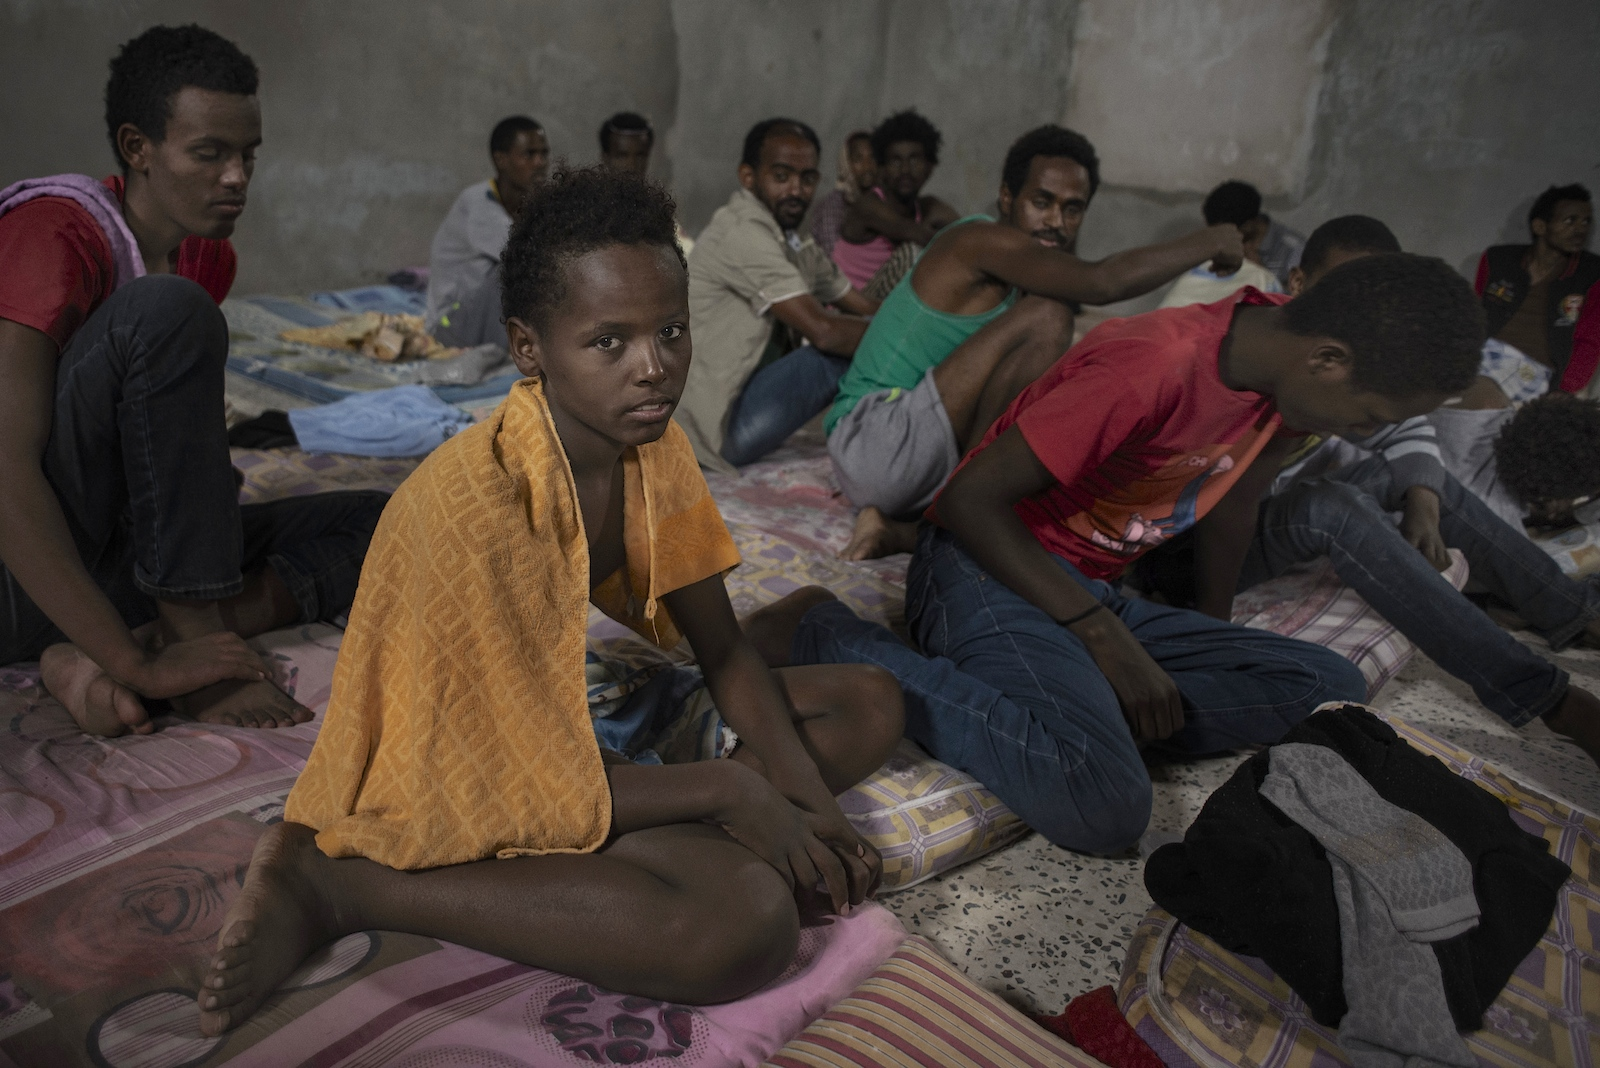 Sagga, 12 years old, and other inmates at a detention camp for migrants in Zawya, Libya.